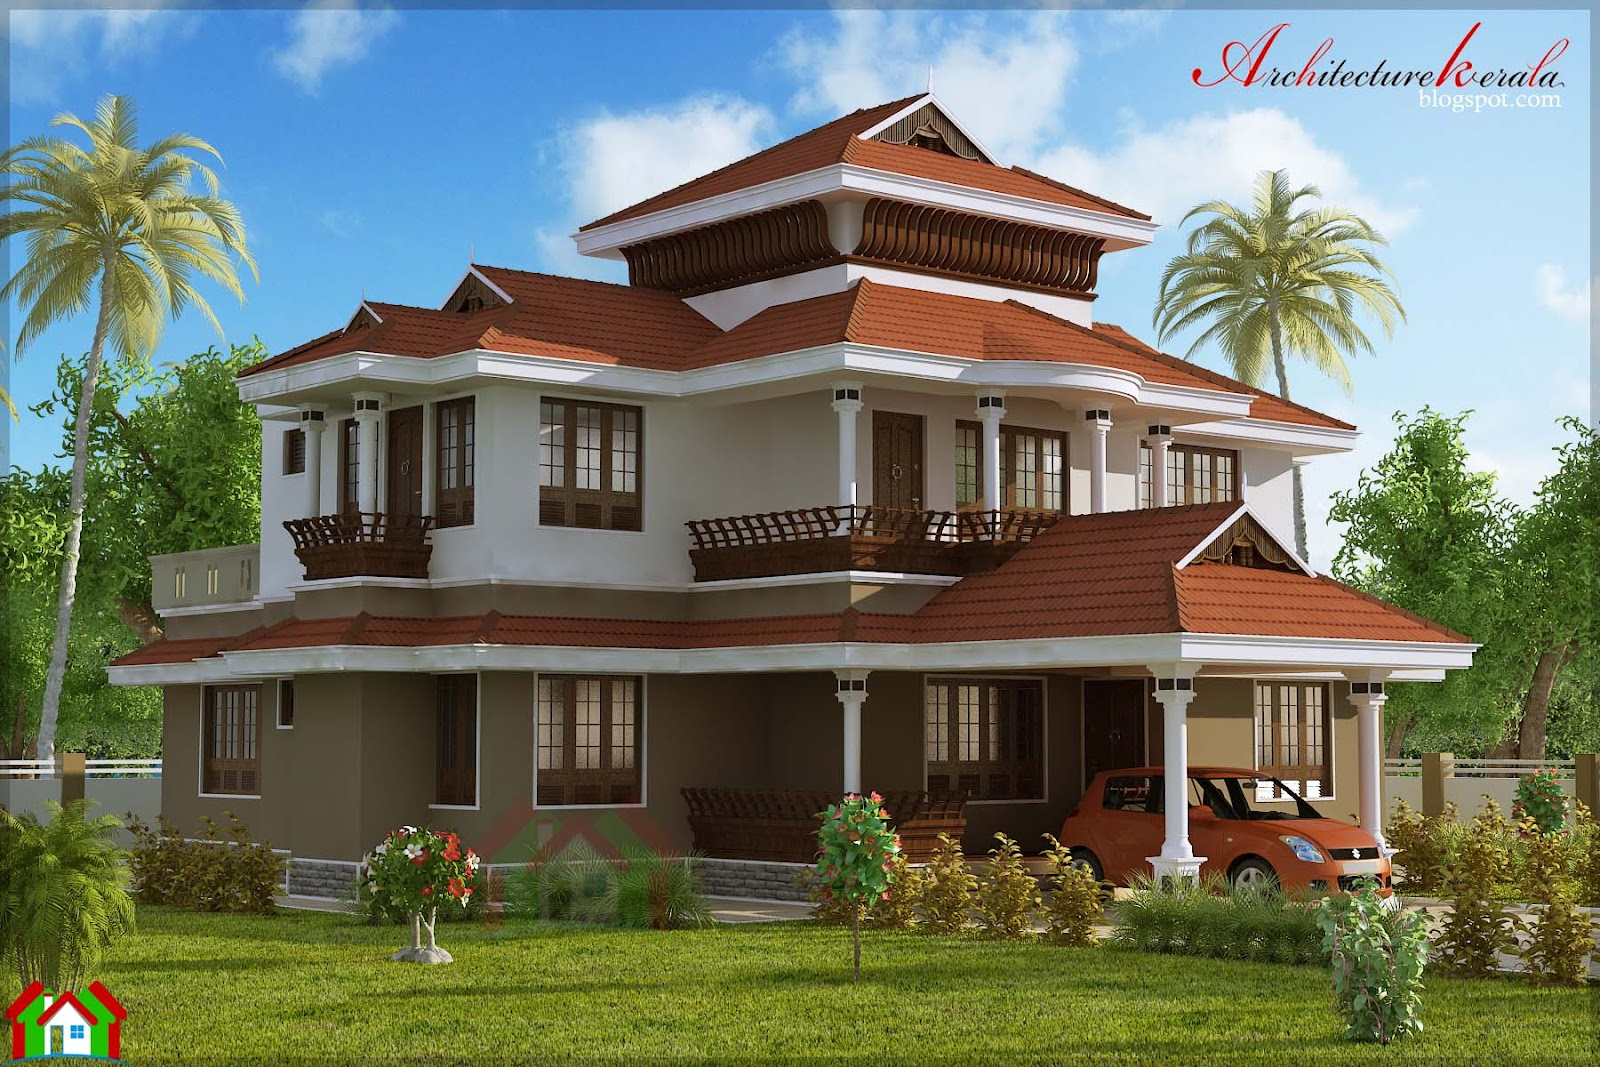 Architecture Kerala 4 BED ROOM TRADITIONAL STYLE HOUSE